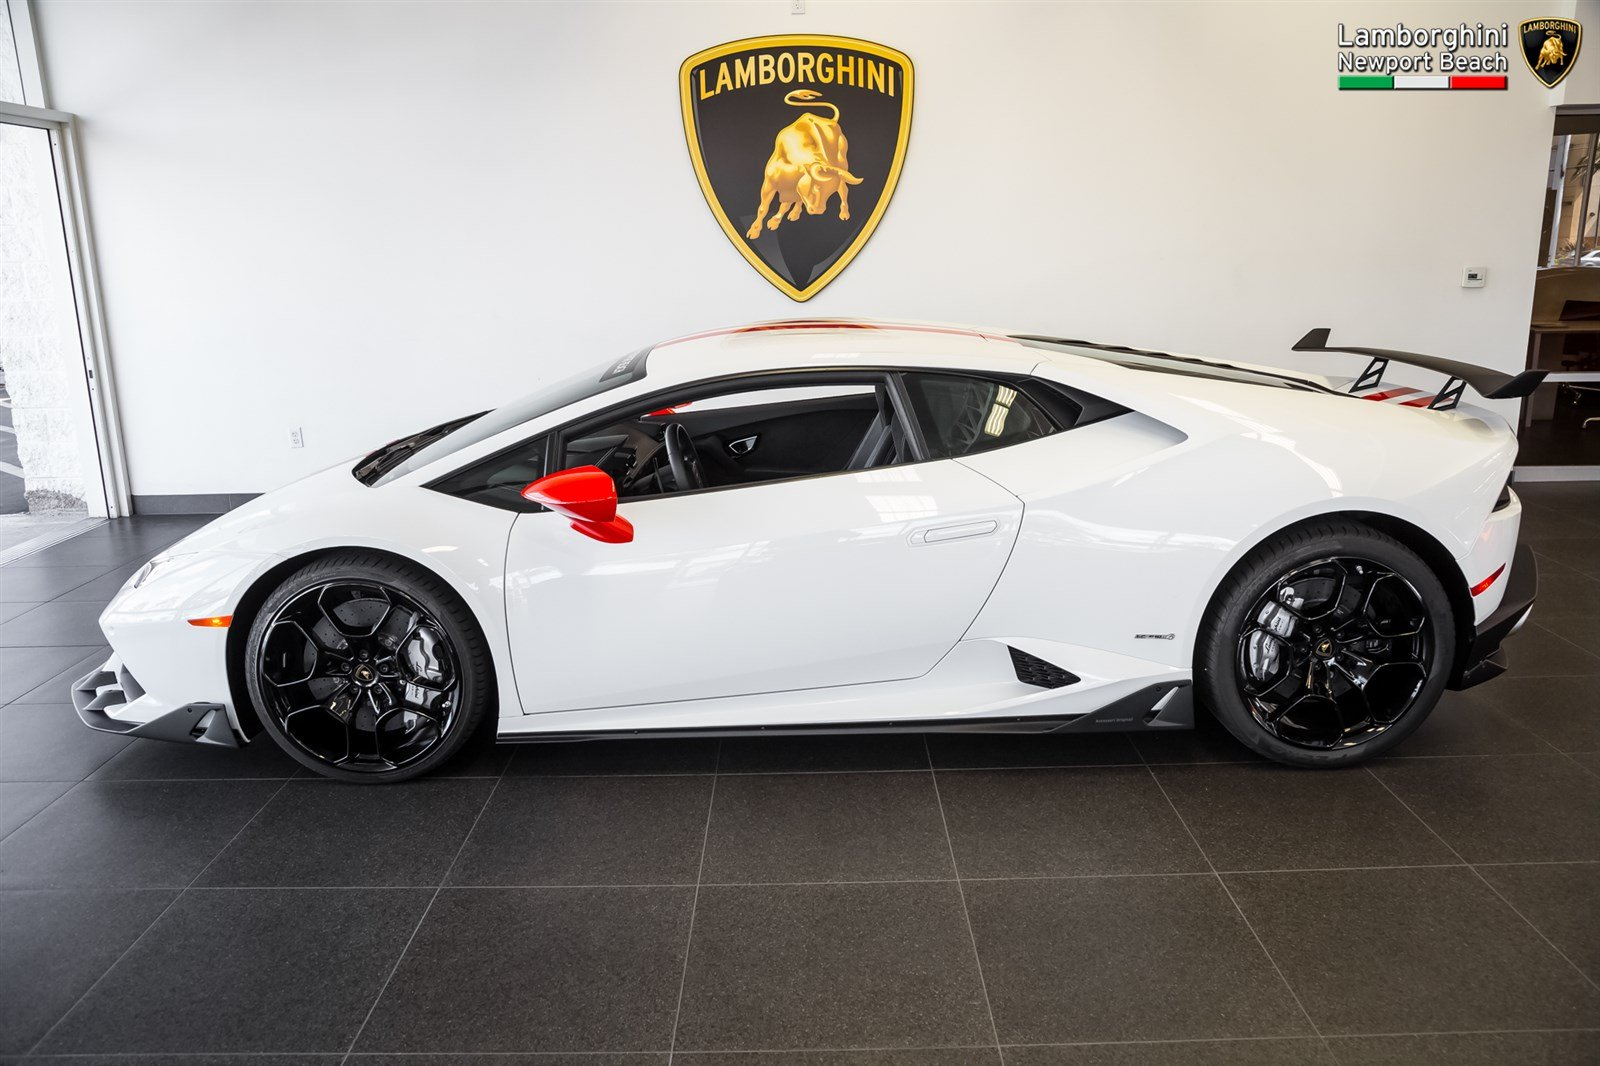 this is lamborghini 39 s own aero package for the huracan autoevolution. Black Bedroom Furniture Sets. Home Design Ideas